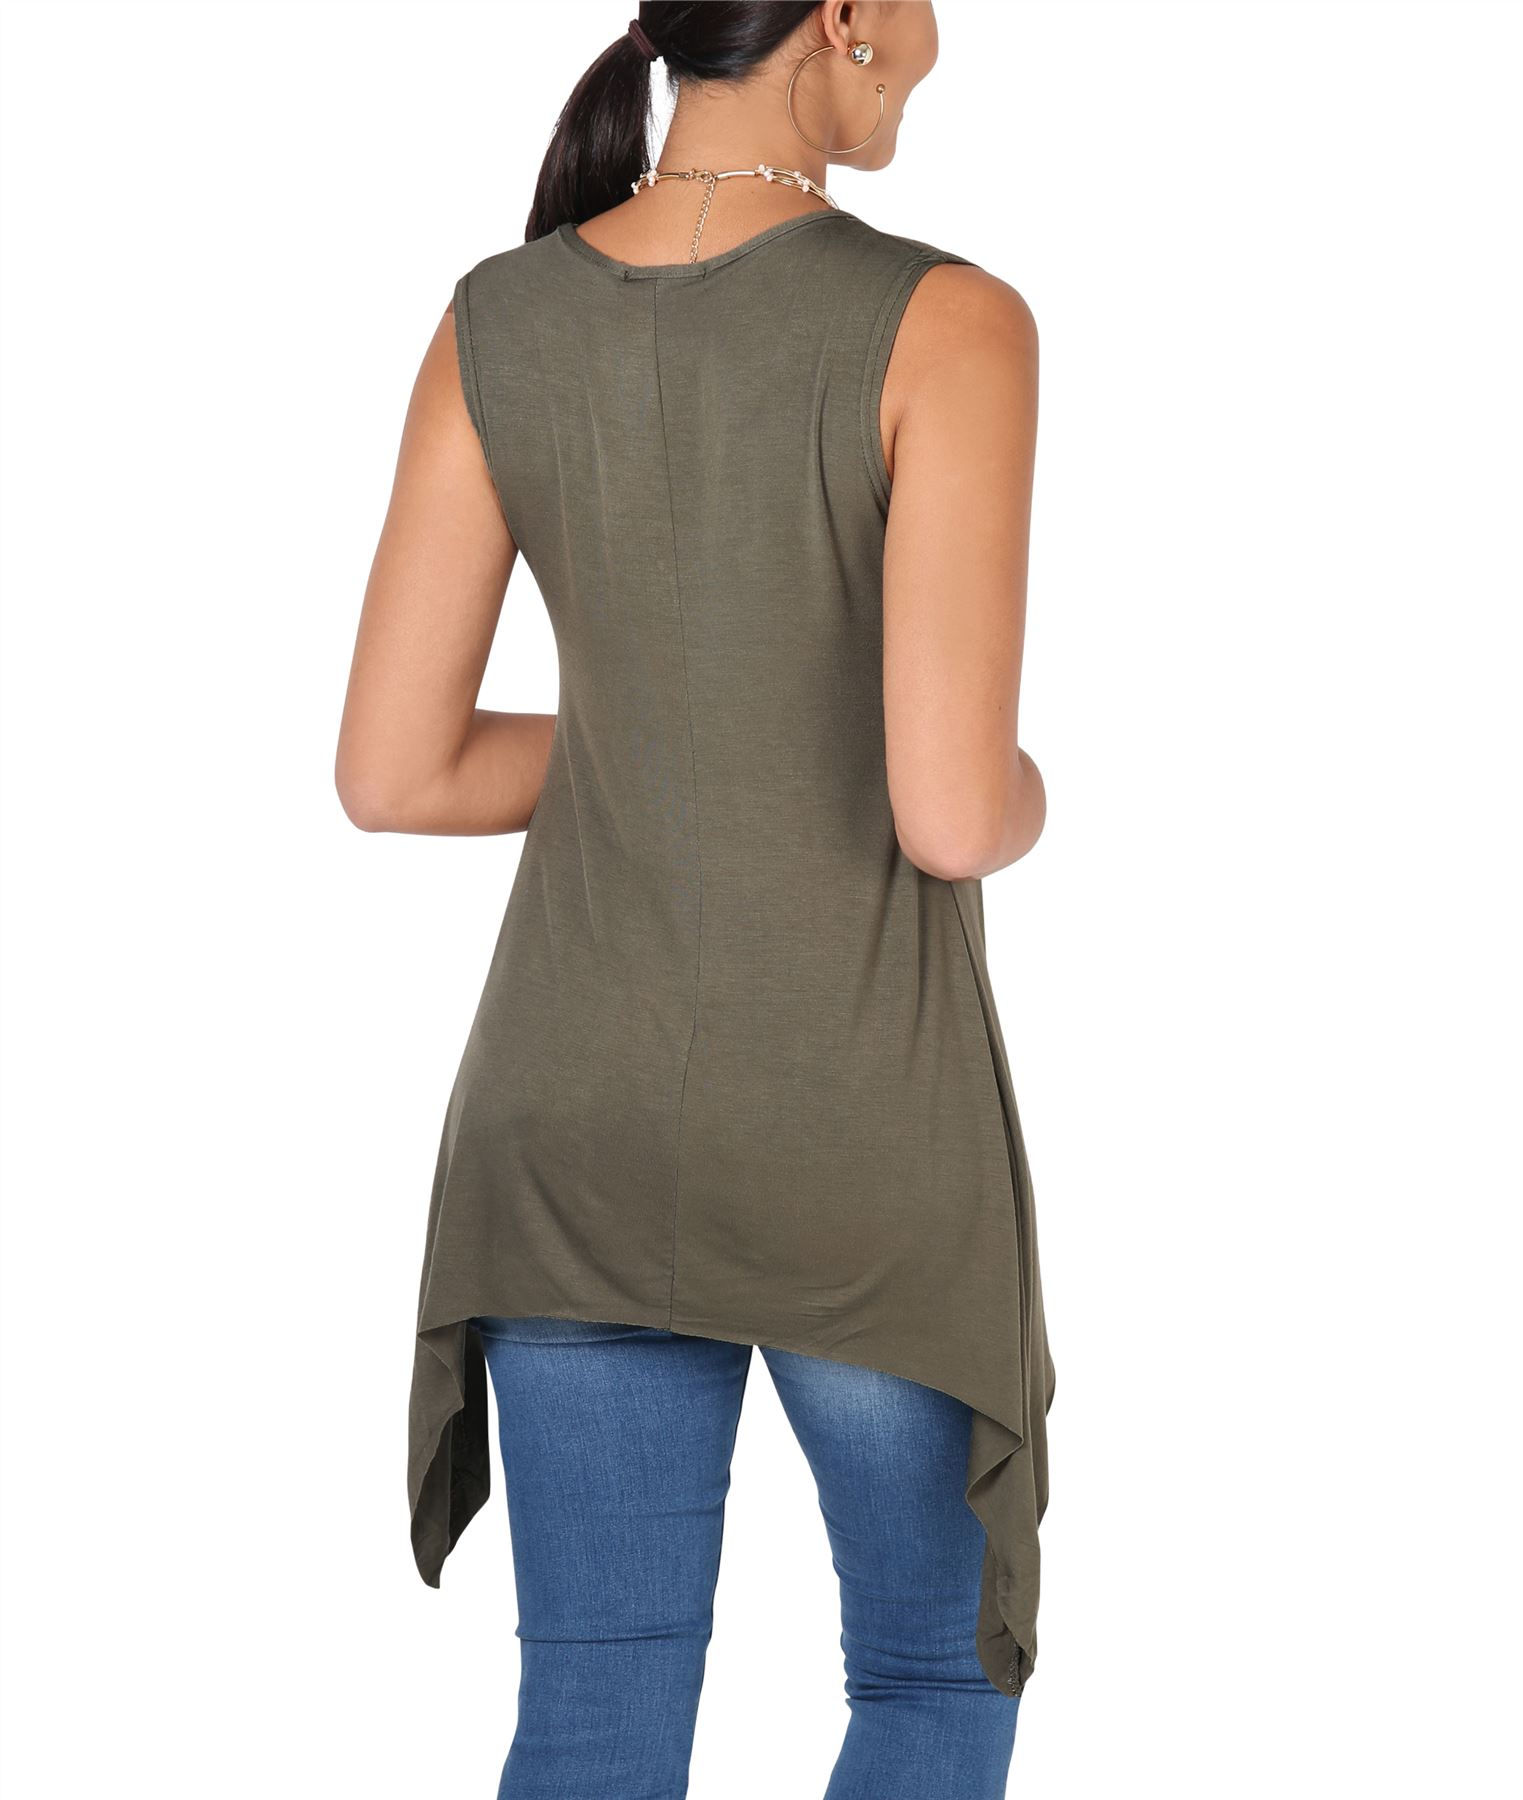 Women-Long-Top-Sleeveless-Pleated-Tee-Shirt-Tunic-Jersey-Stretch-Loose-Fit thumbnail 14